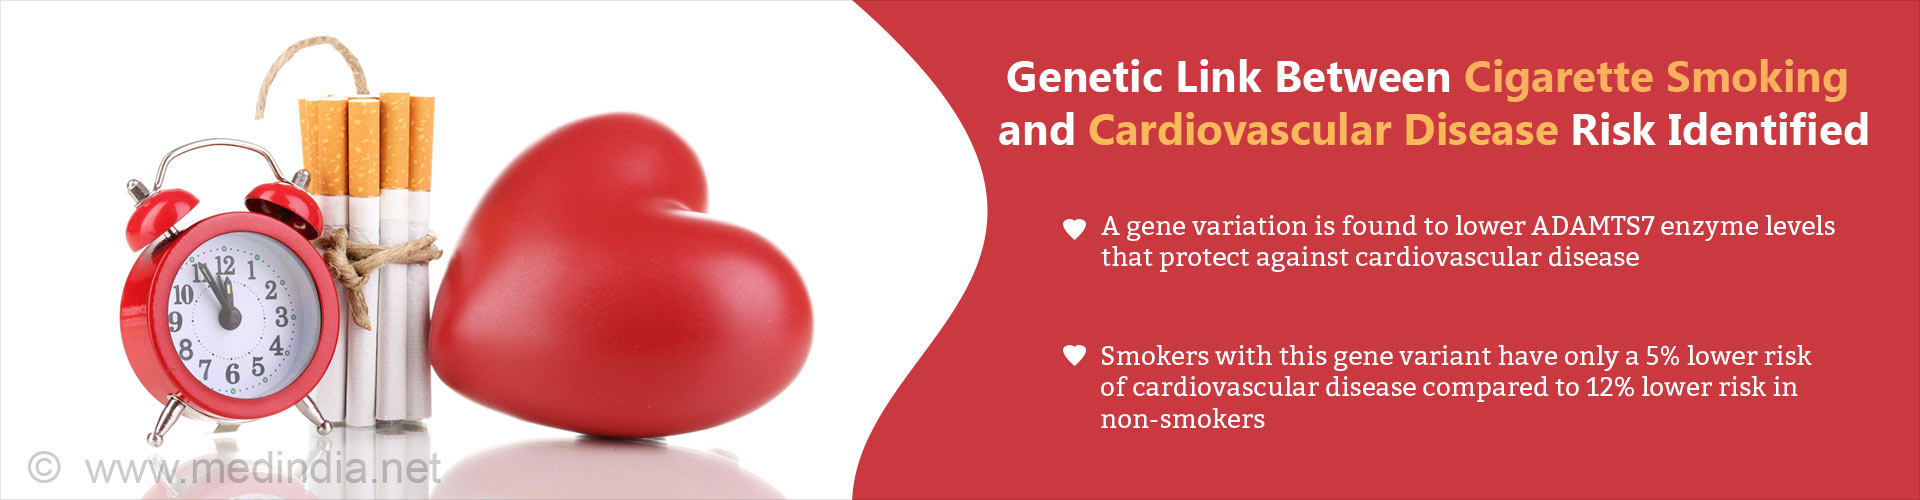 Genetic link between cigarette smoking and cardiovascular disease risk identified